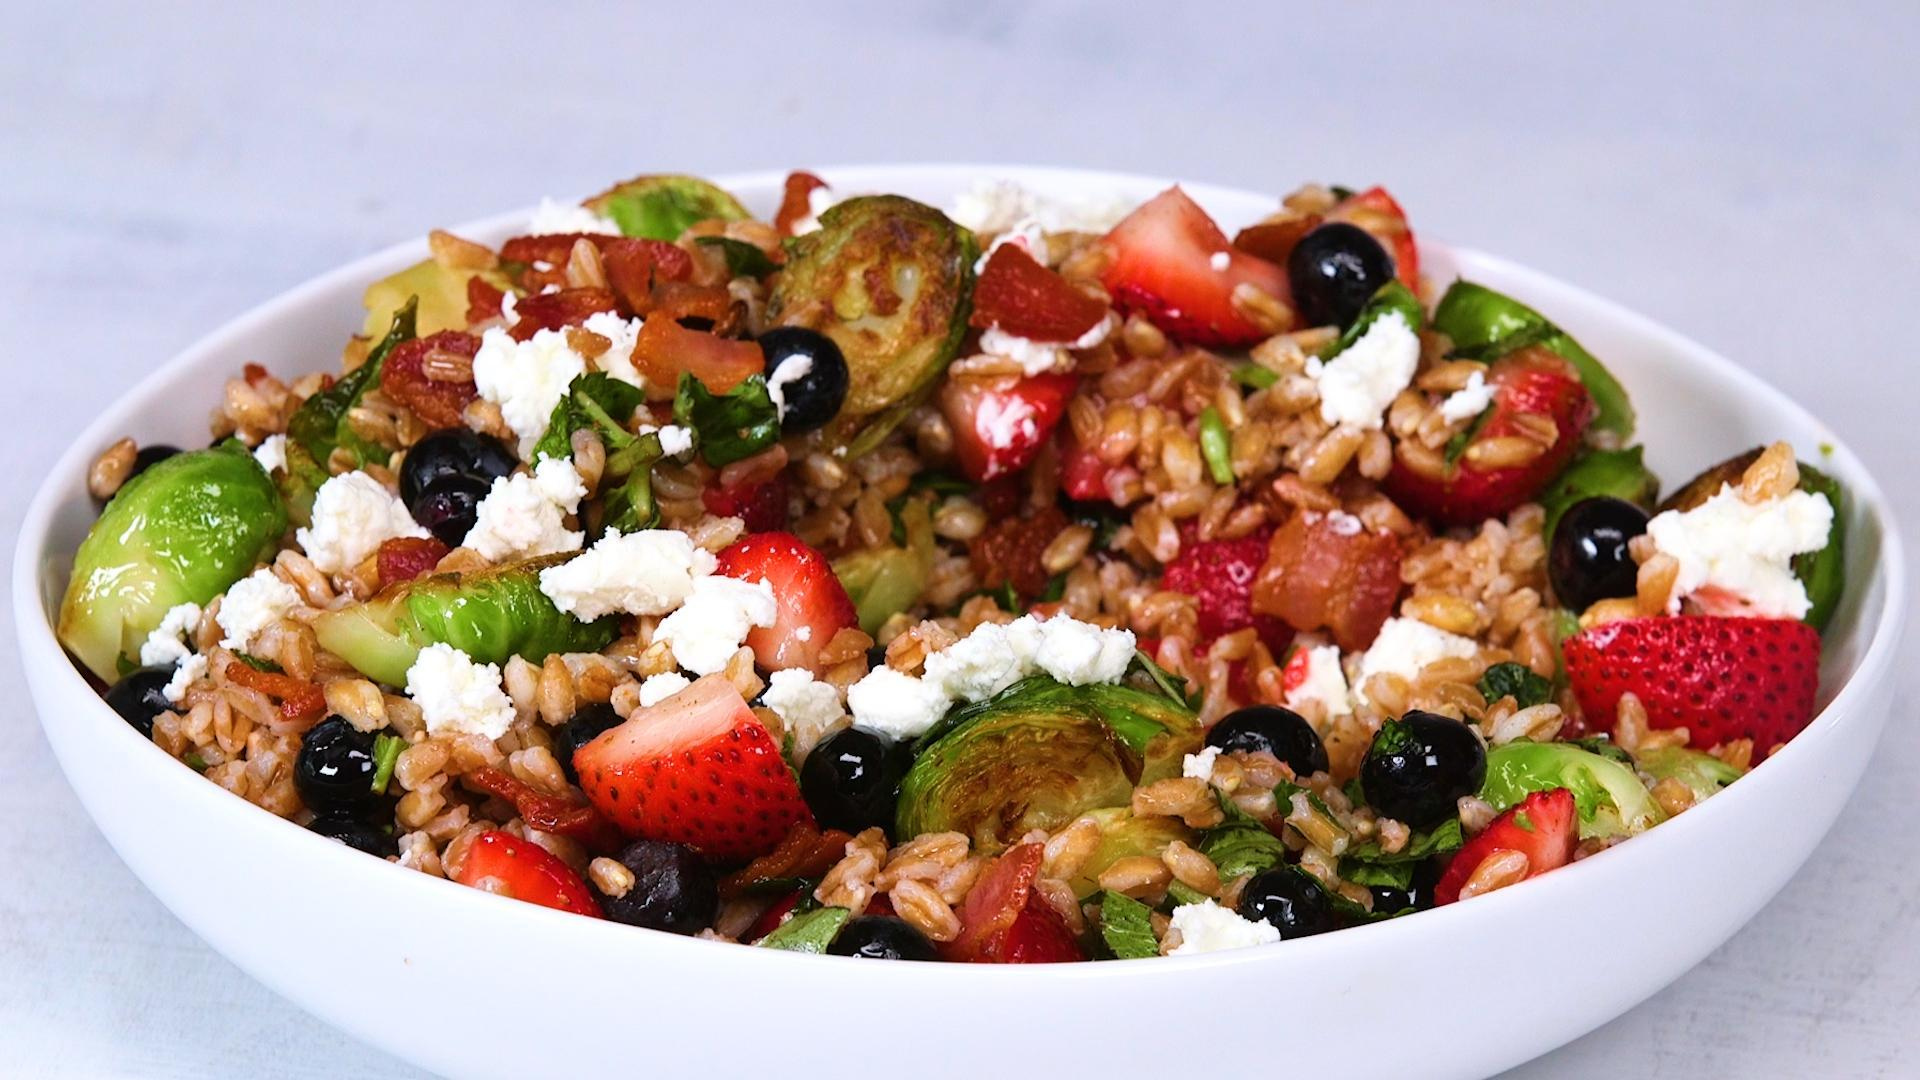 How to Make Farro Salad with Brussels Sprouts, Bacon and Berries